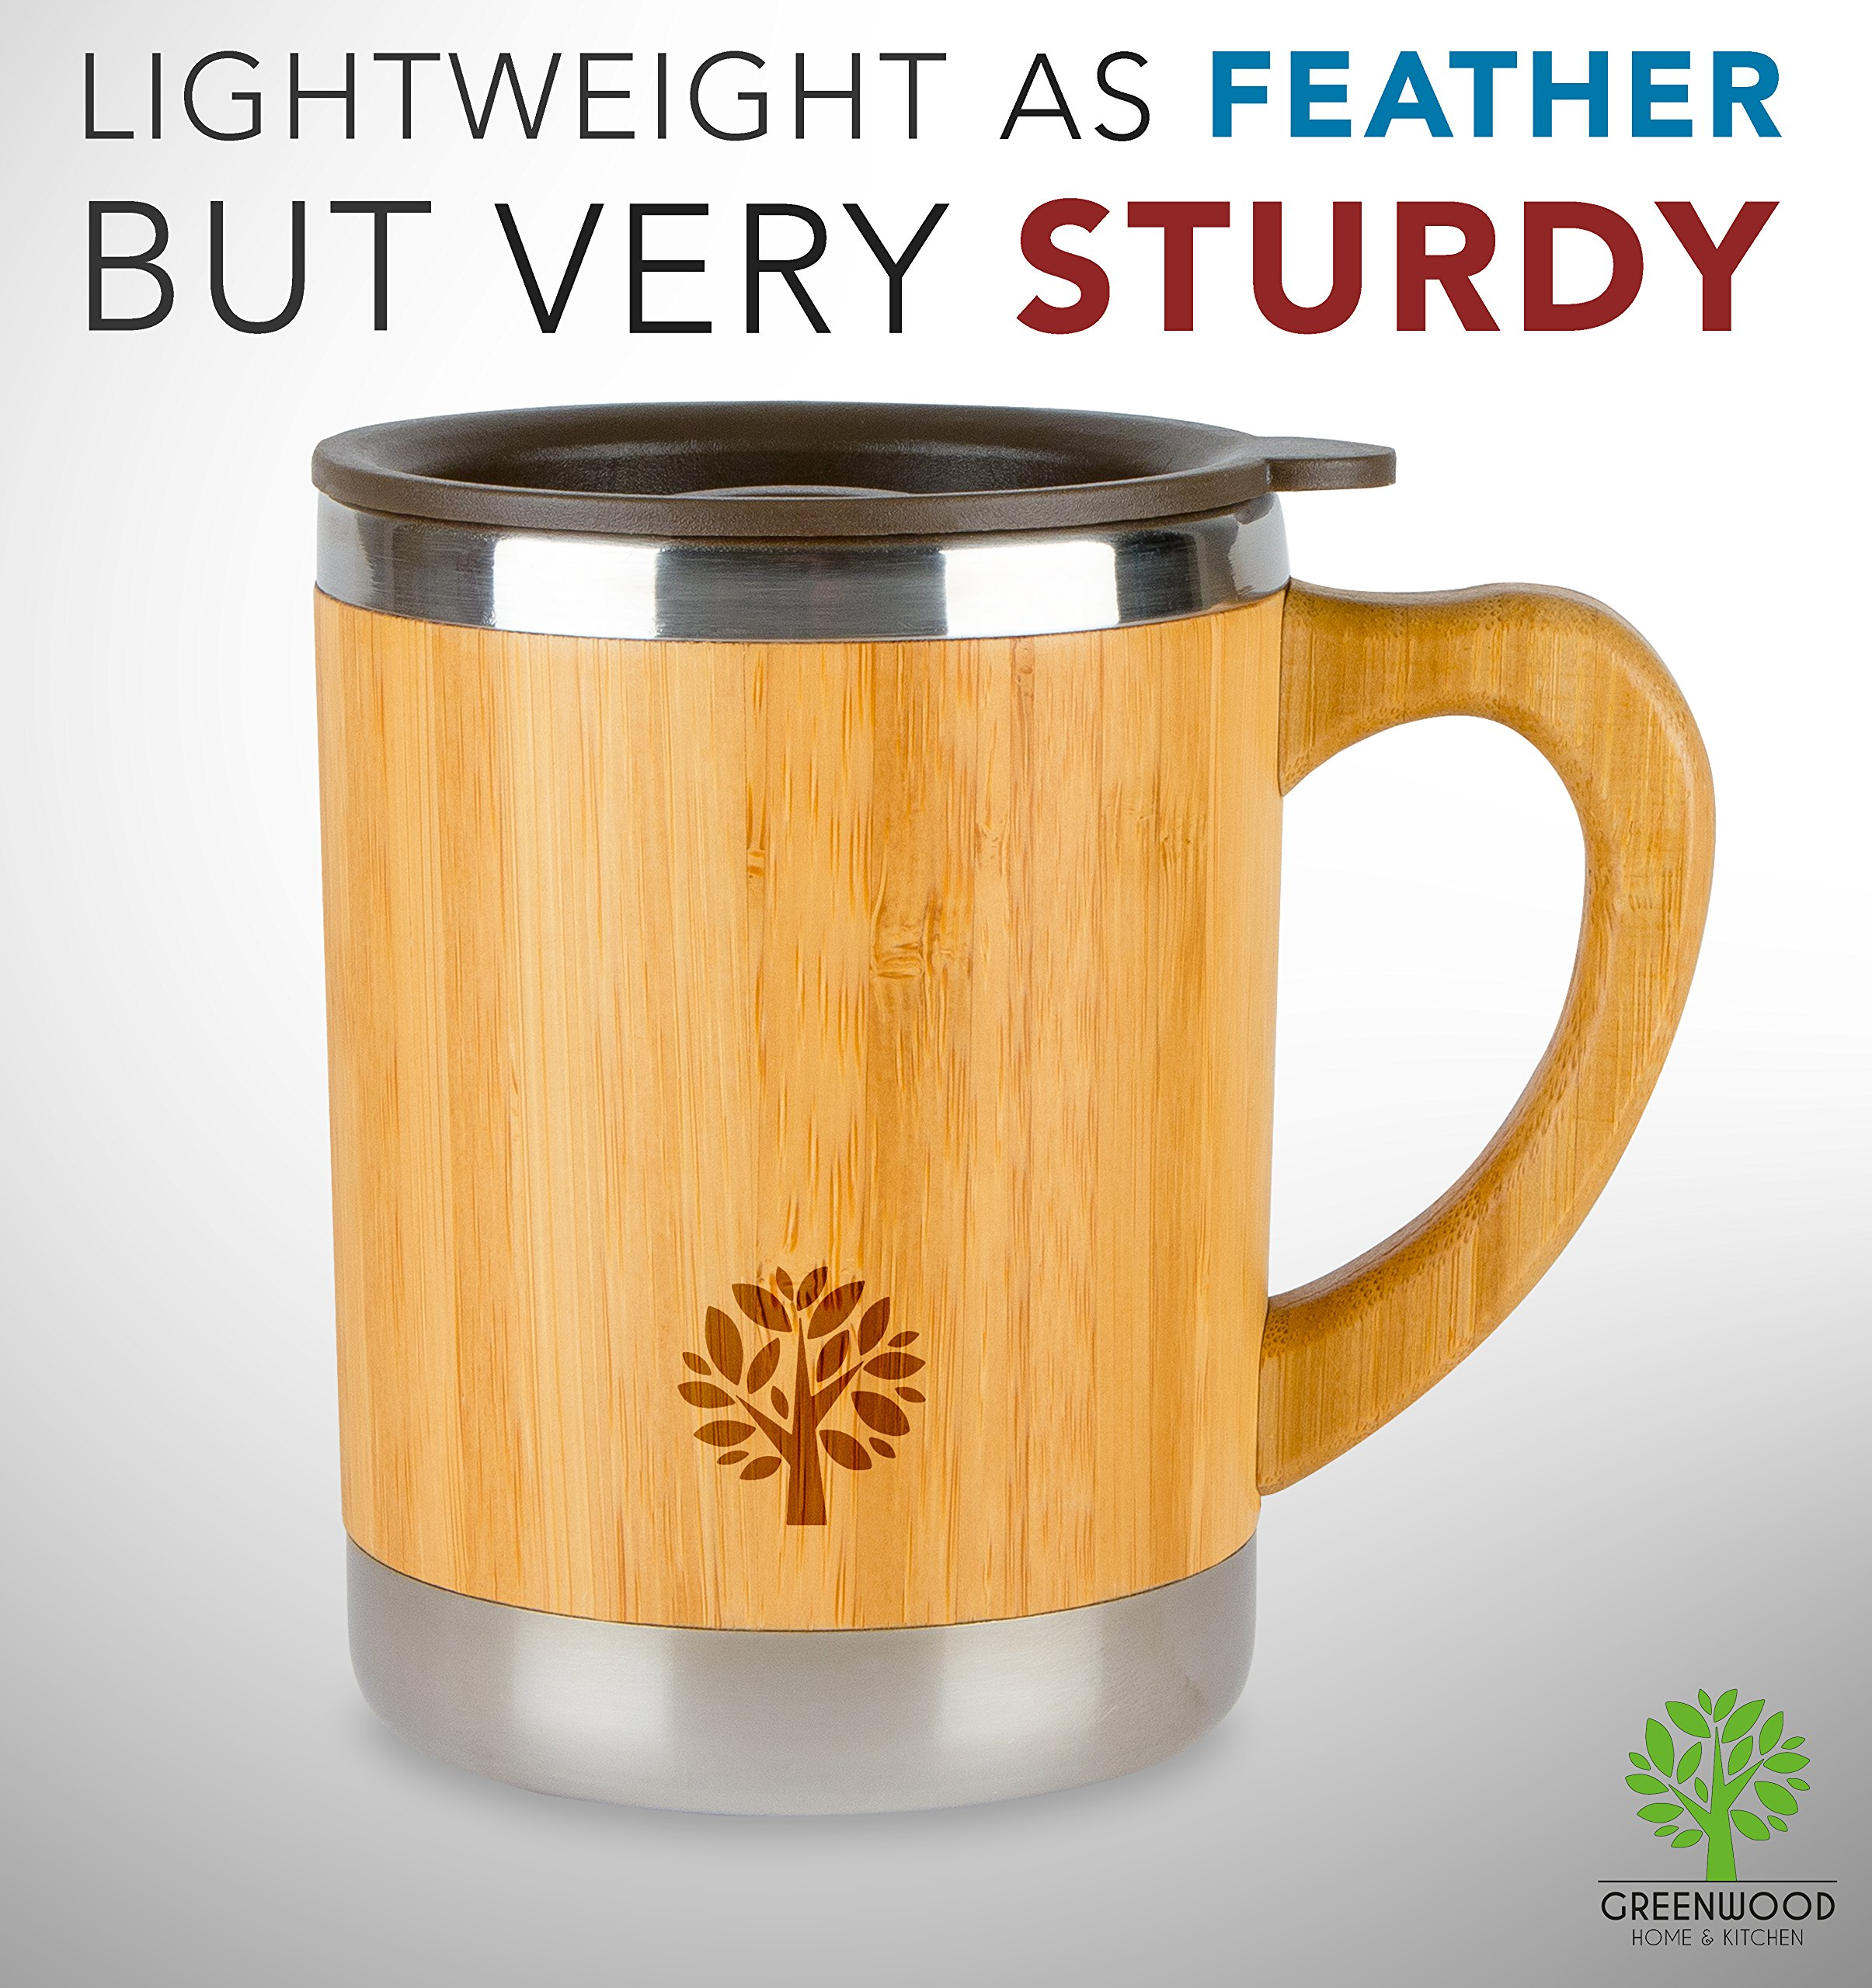 Stainless Steel & Bamboo Coffee Mug - Insulated Wooden Cup with Handle & Lid - Non-Spill On the Go - Keep Your Tea Hot Longer - Unique Gift for Men & Women - 11 oz / 300 ml by JJecommUS (Image #8)